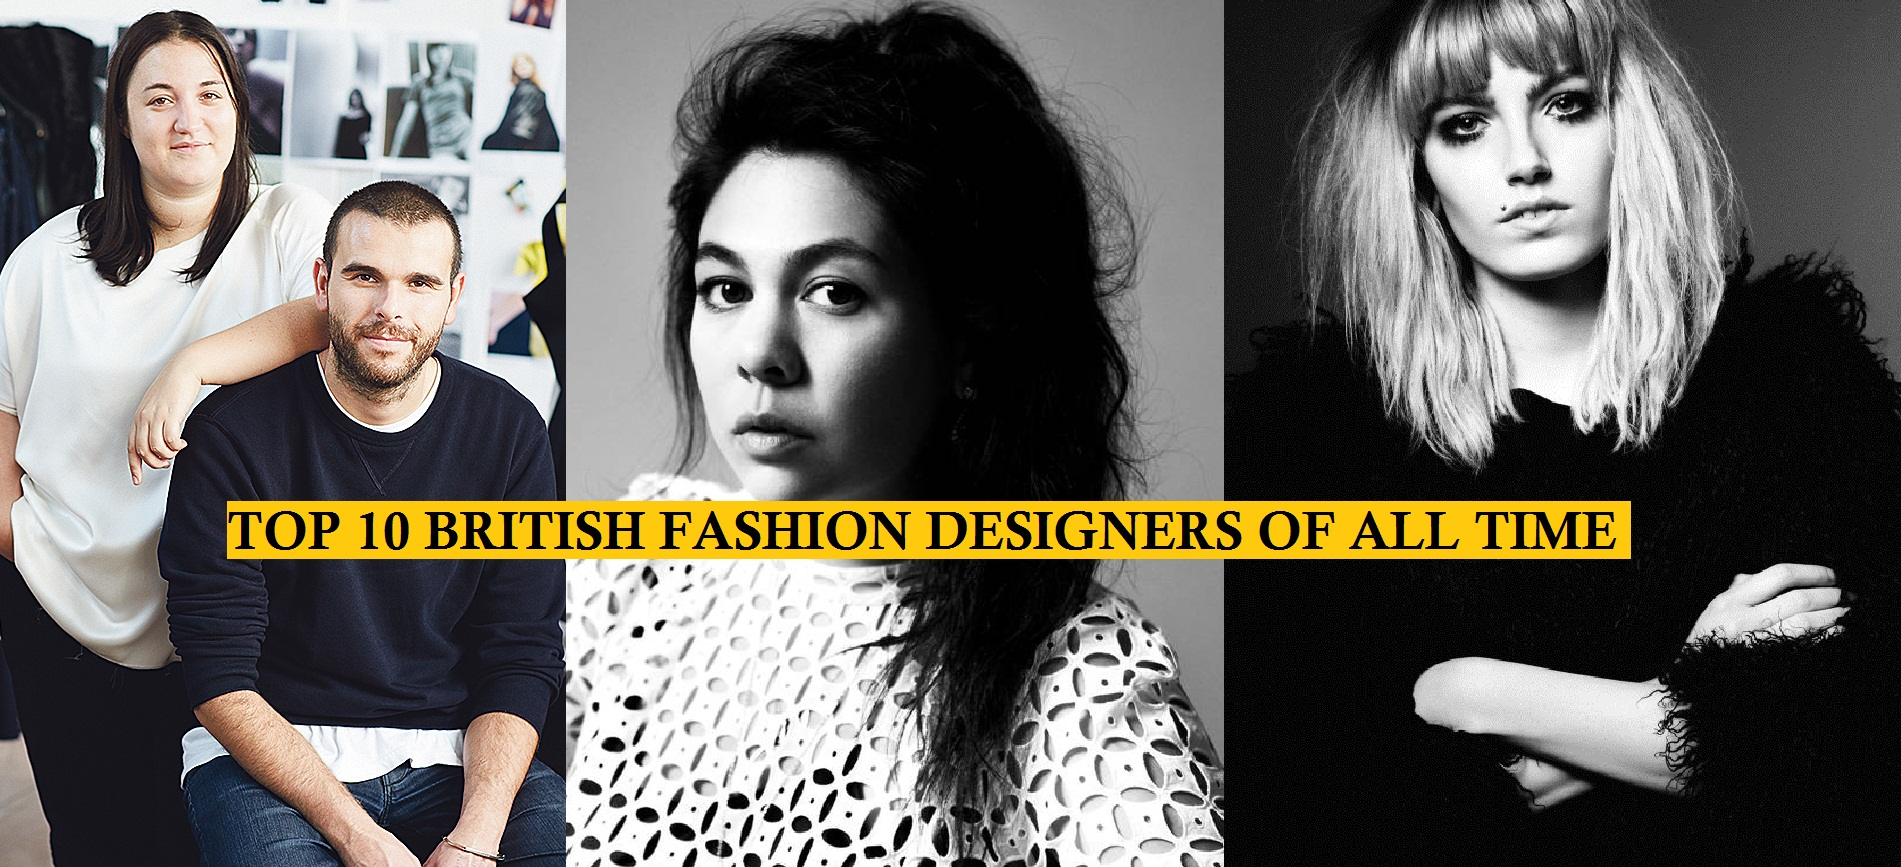 Top 10 Most Popular British Fashion Designers